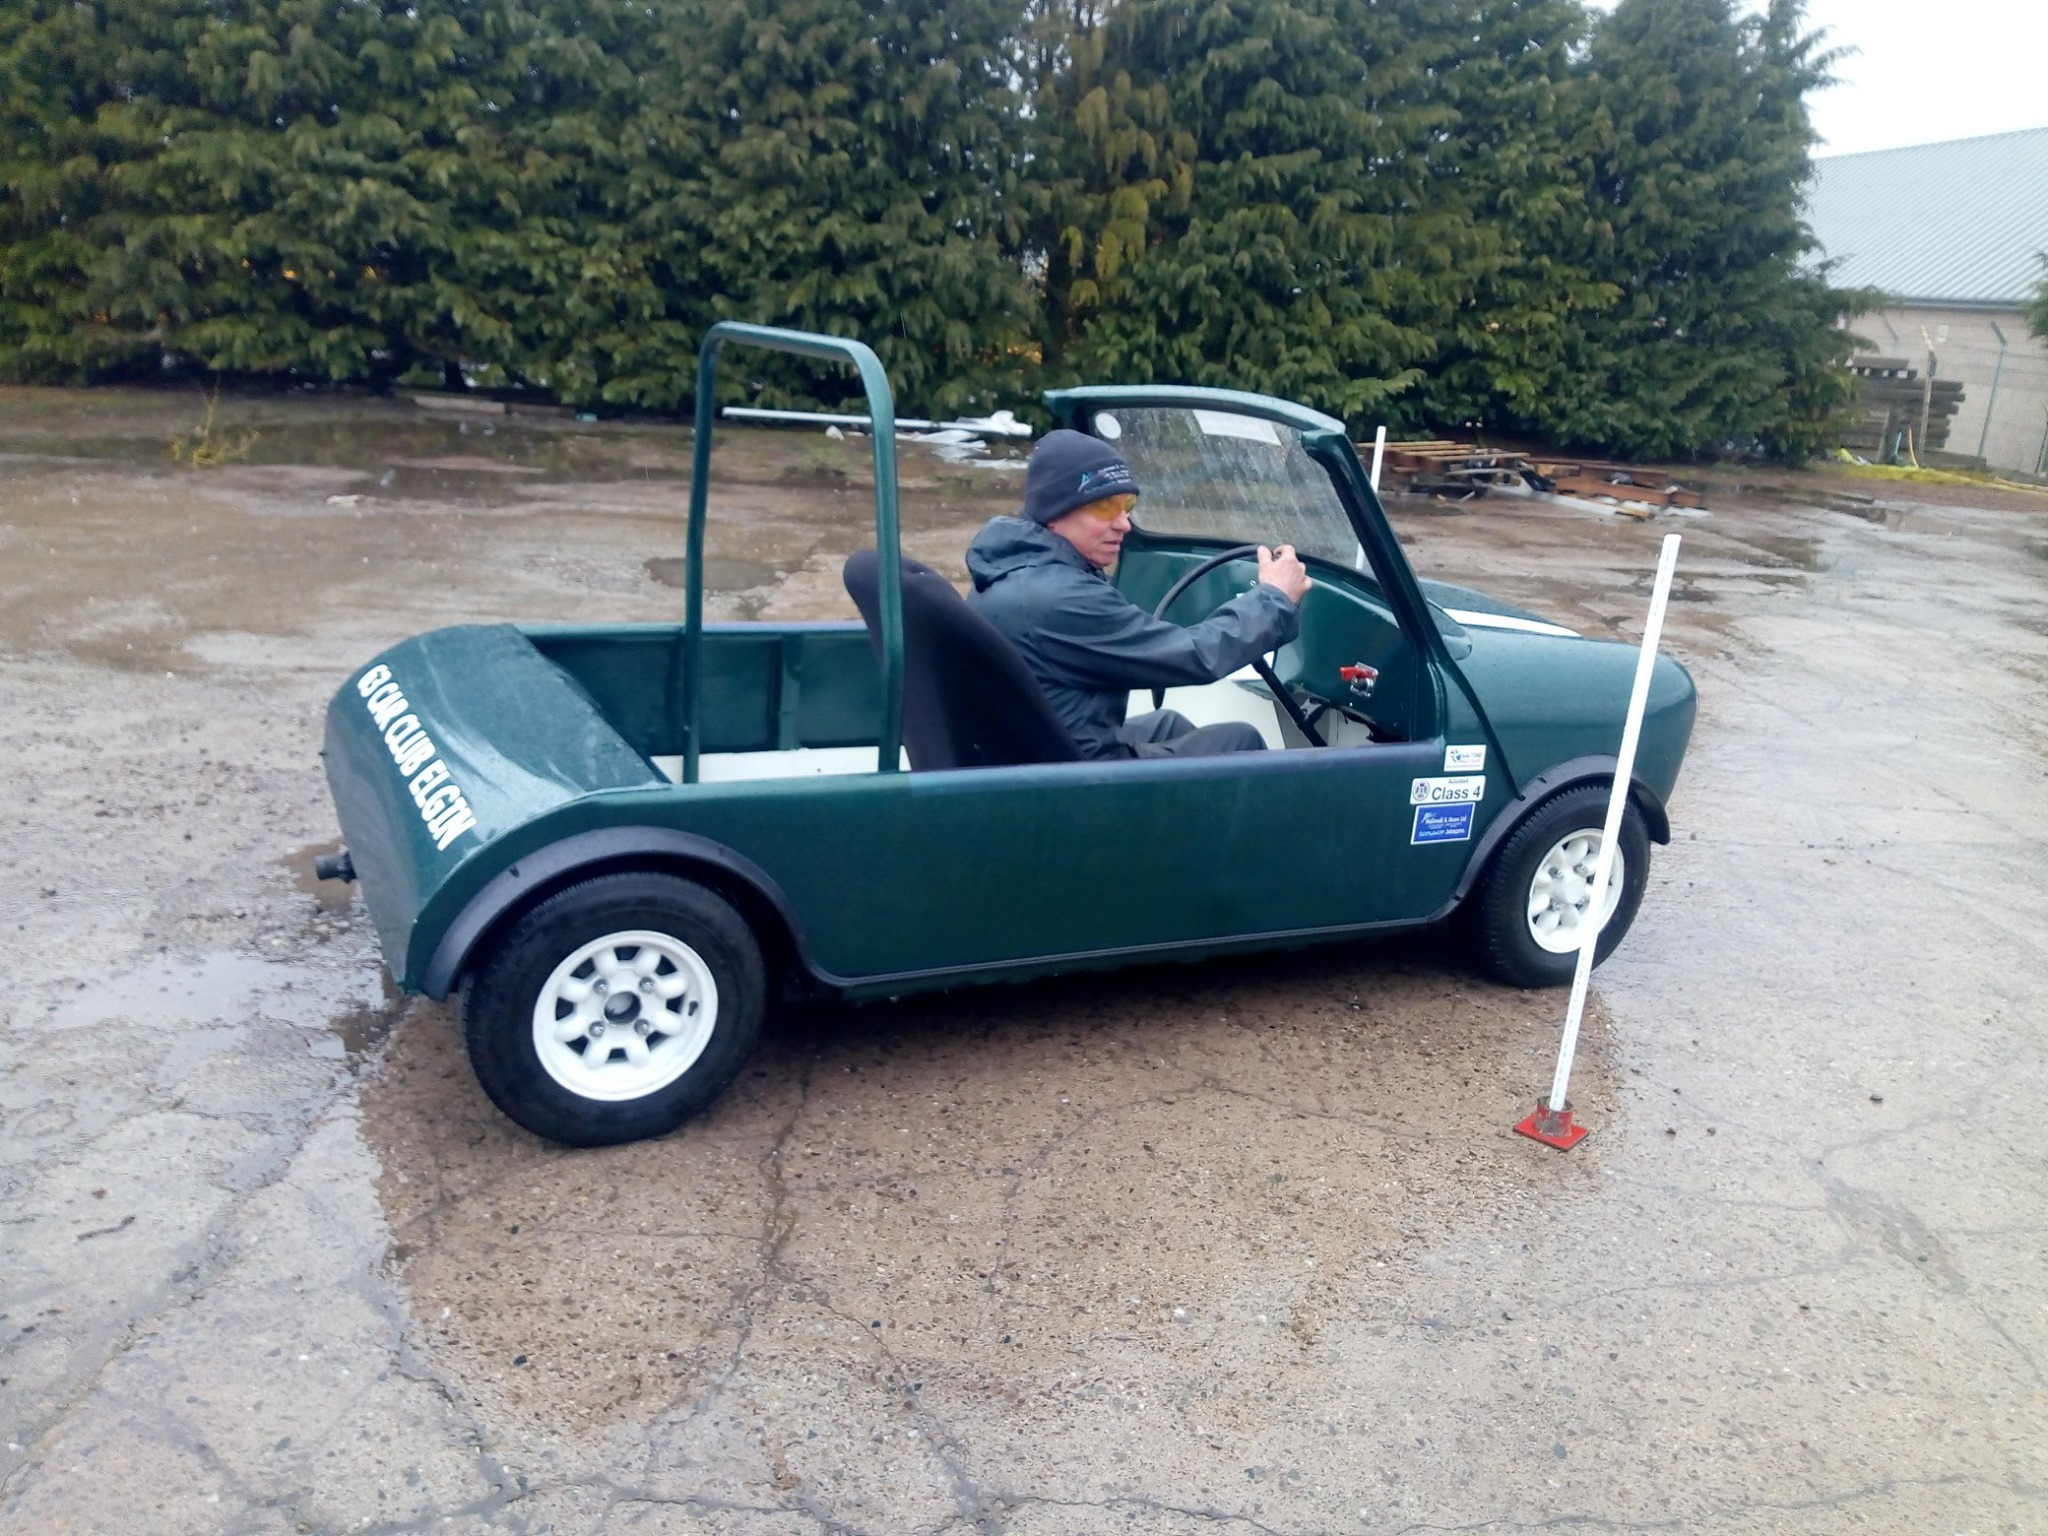 James Morrison 2019 Champion in his mean and roofless Mini special